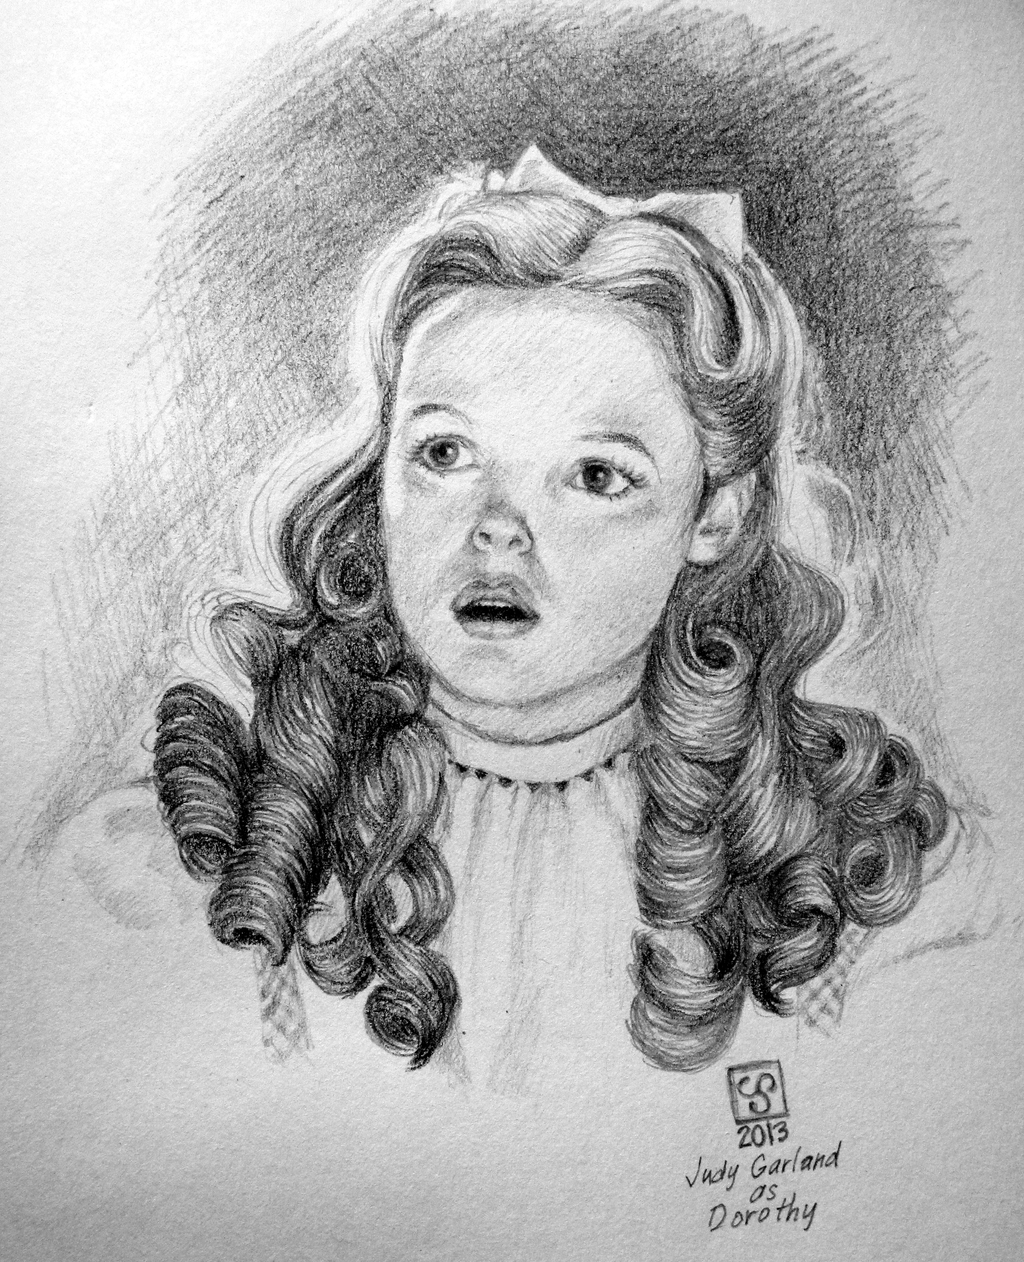 Judy Garland as Dorothy #DSC by The-Tinidril on DeviantArt